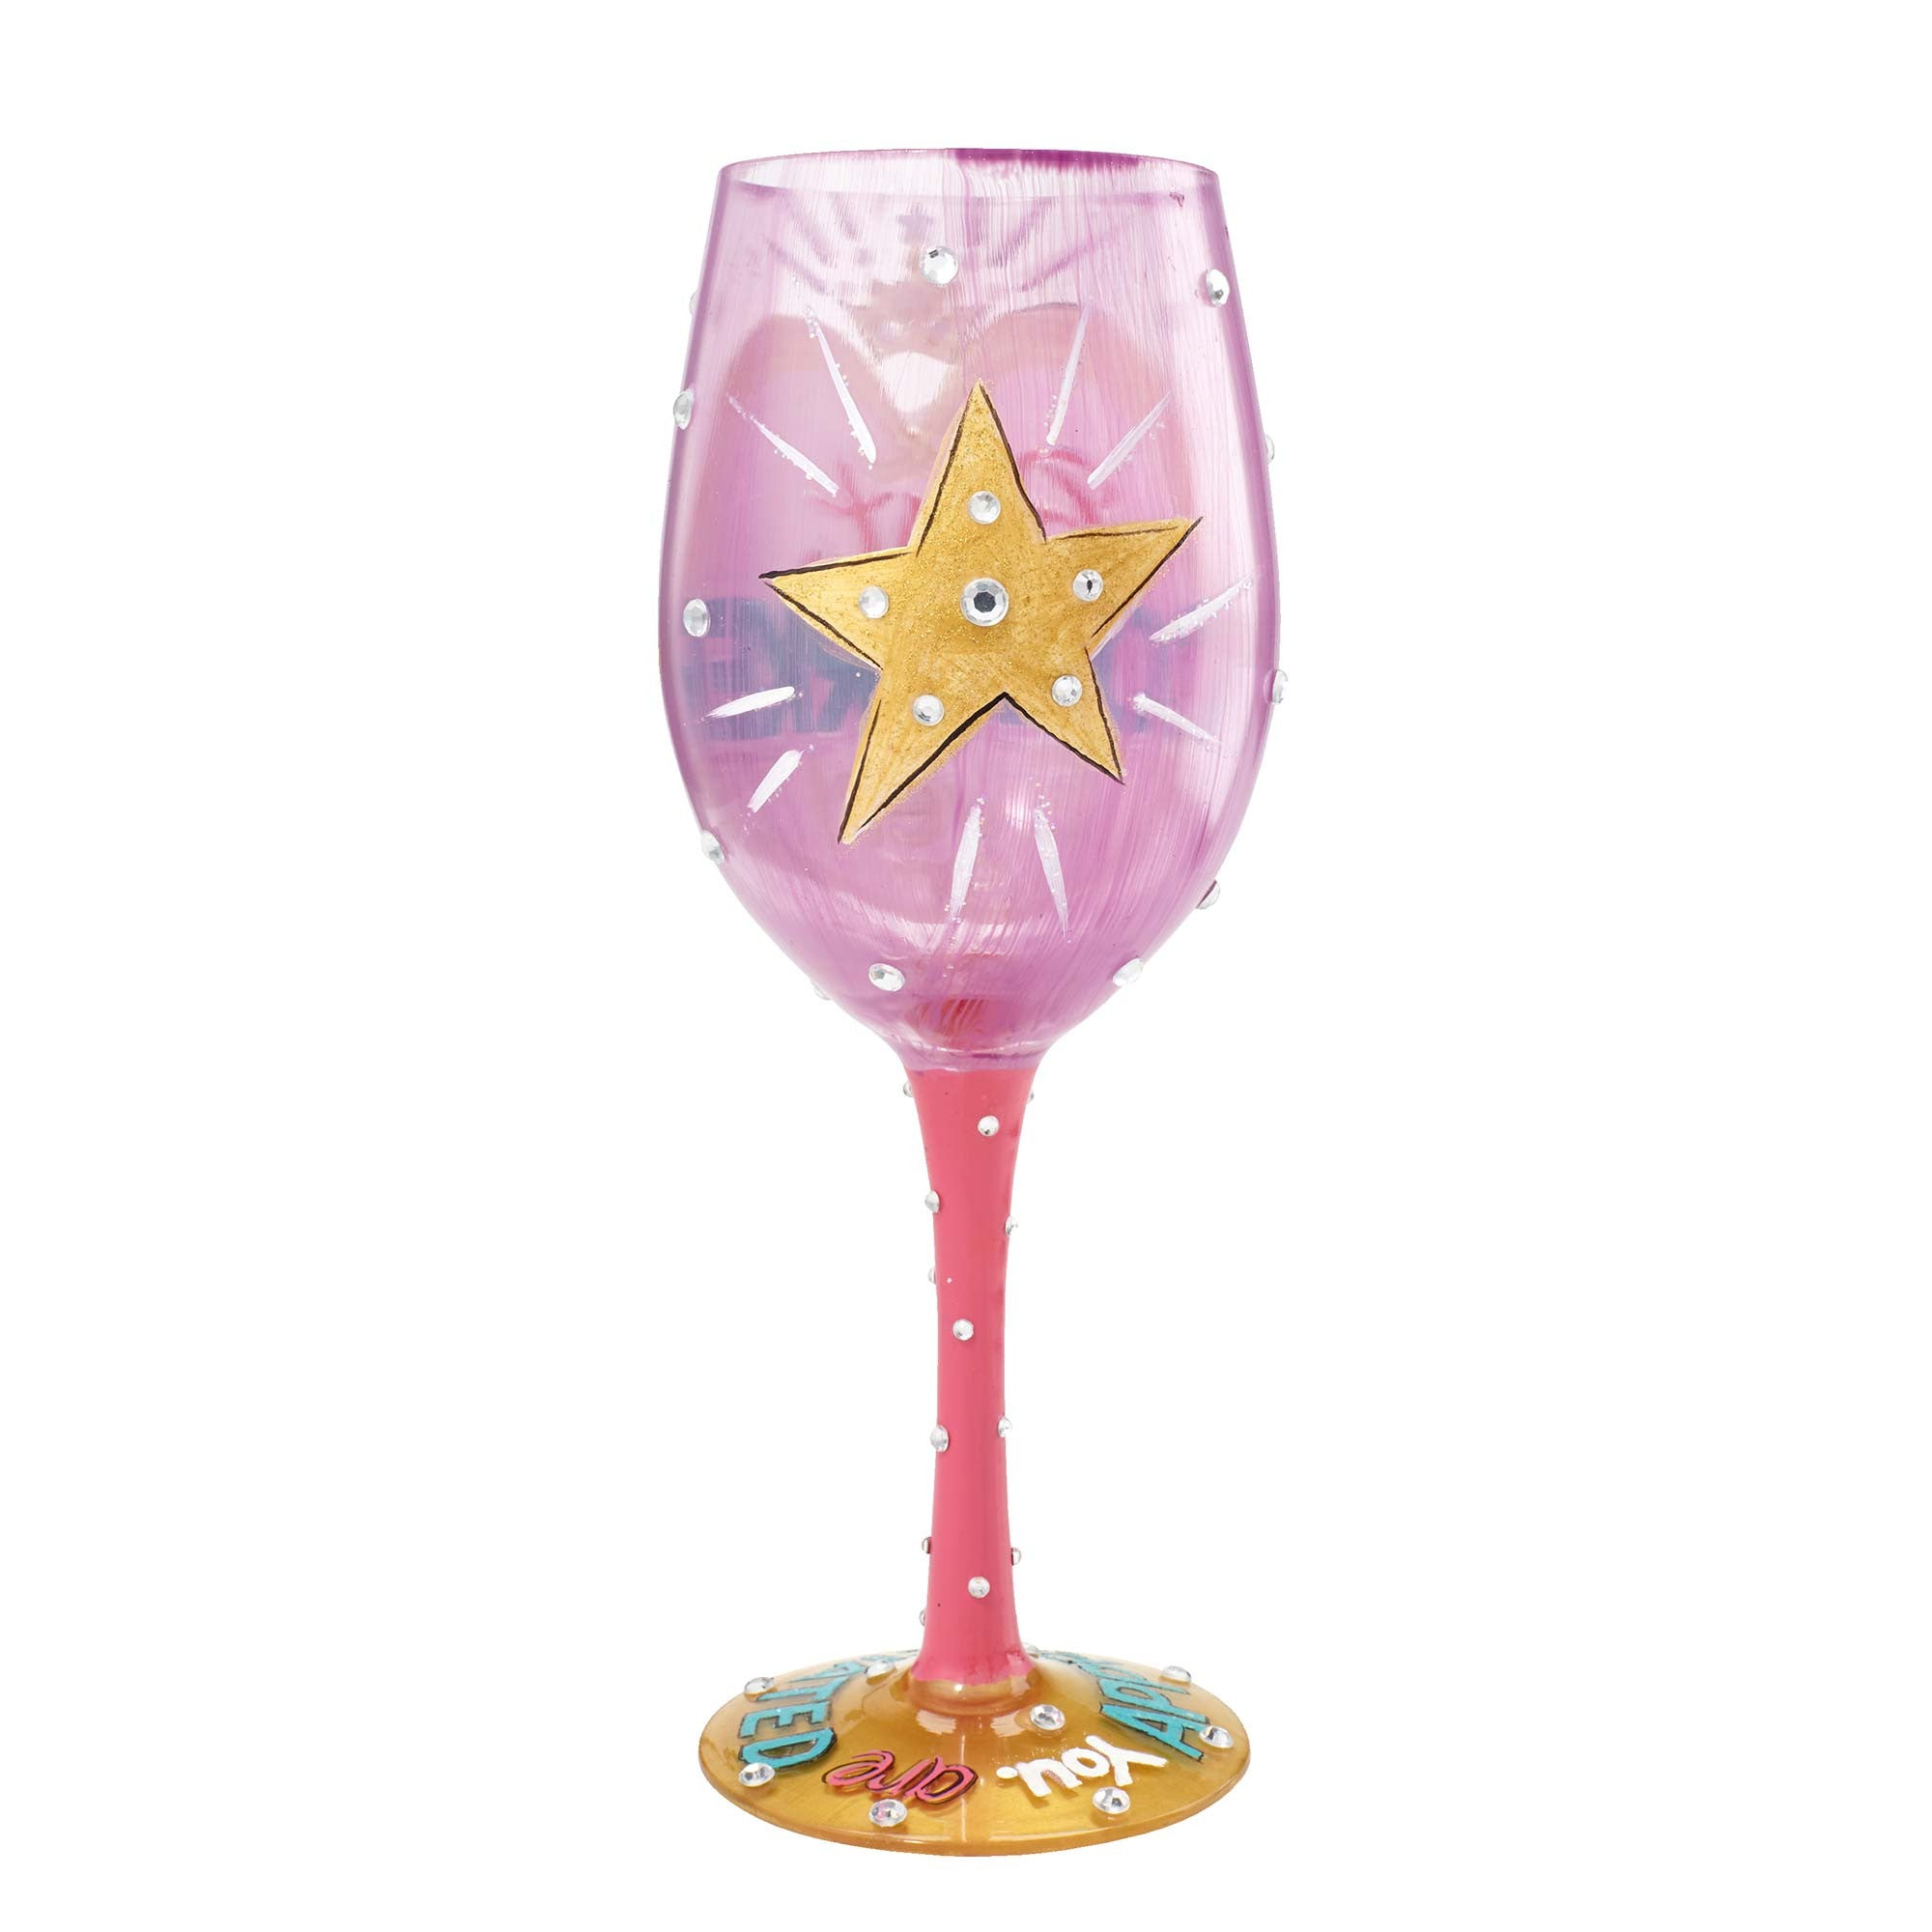 "7837b1d1c06e ""Best Coworker Ever"" Hand painted Wine Glass"